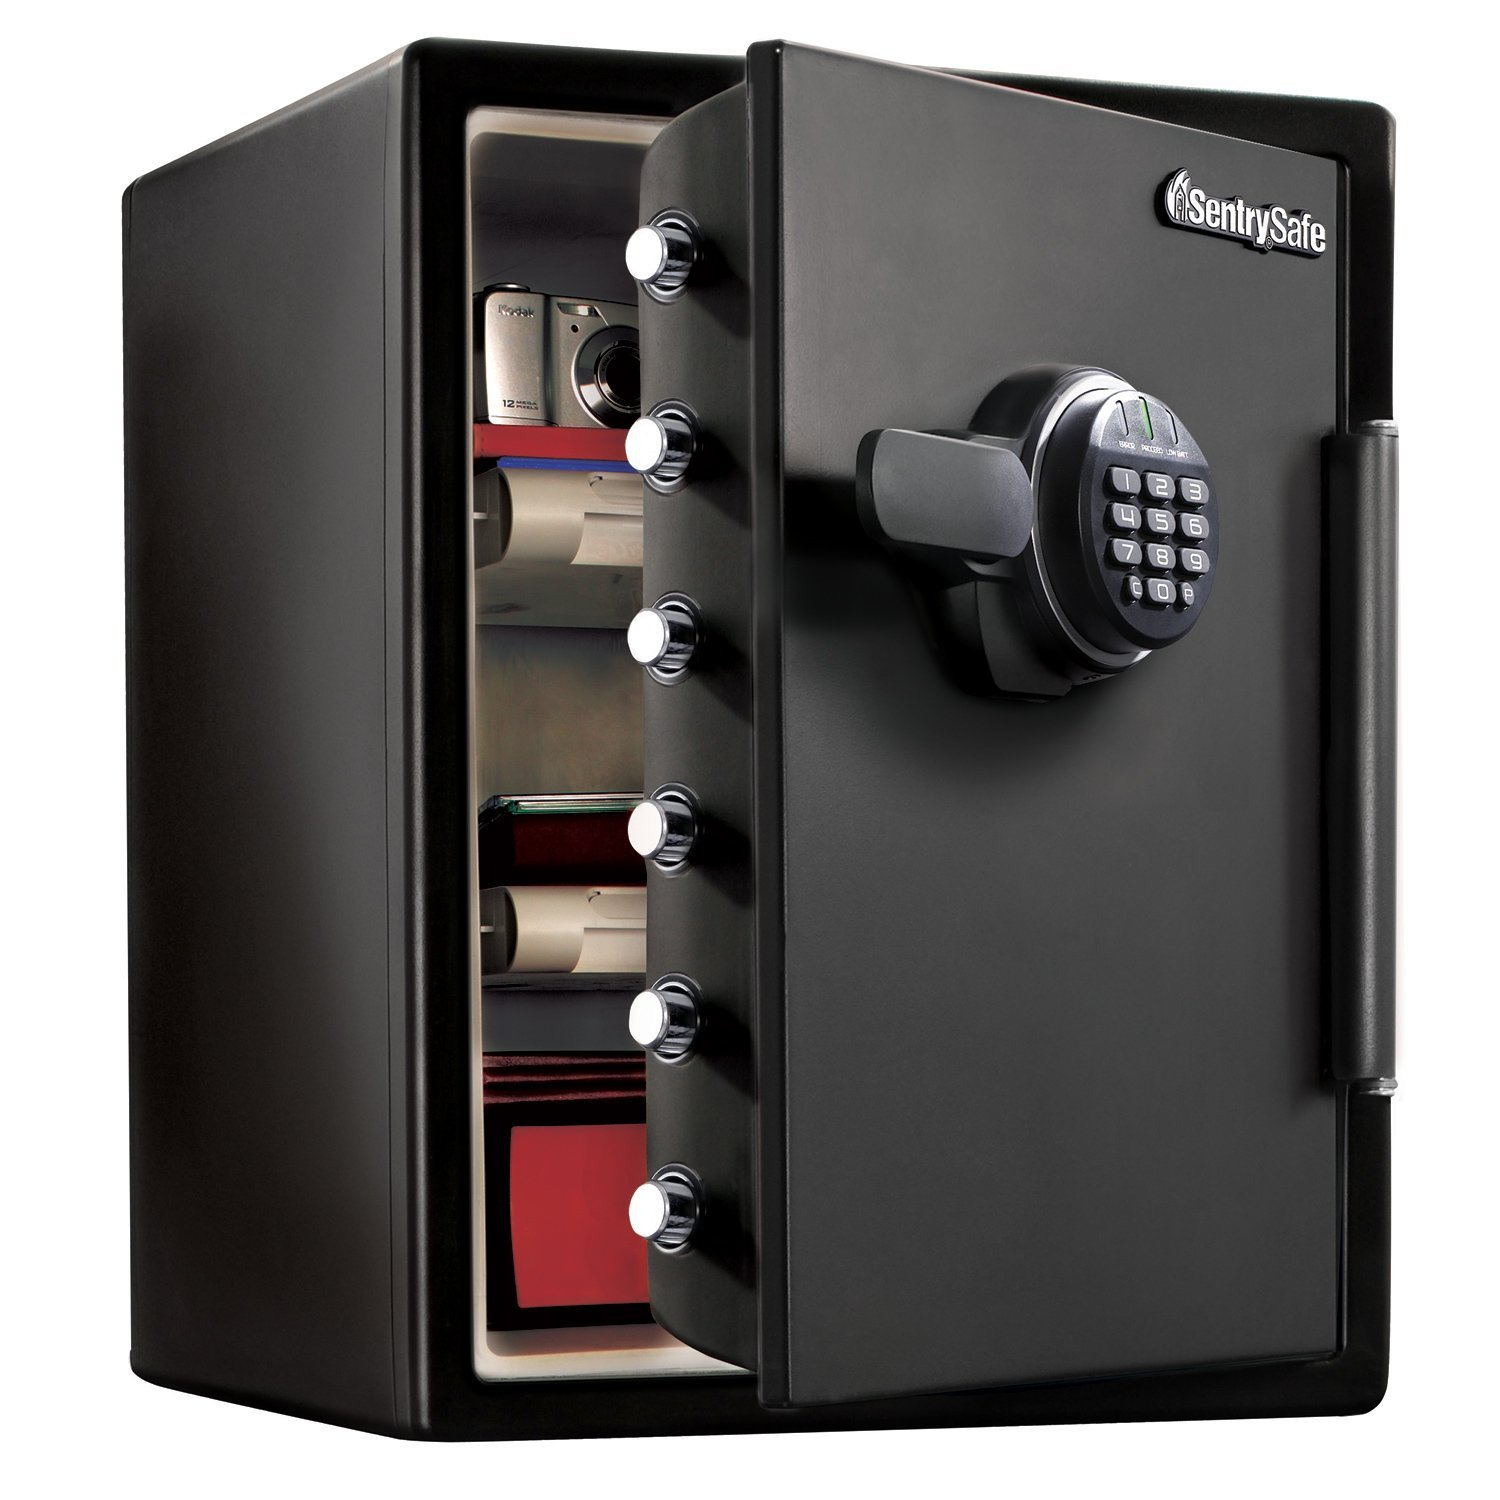 3. XXL Digital Safe - Combination Safe